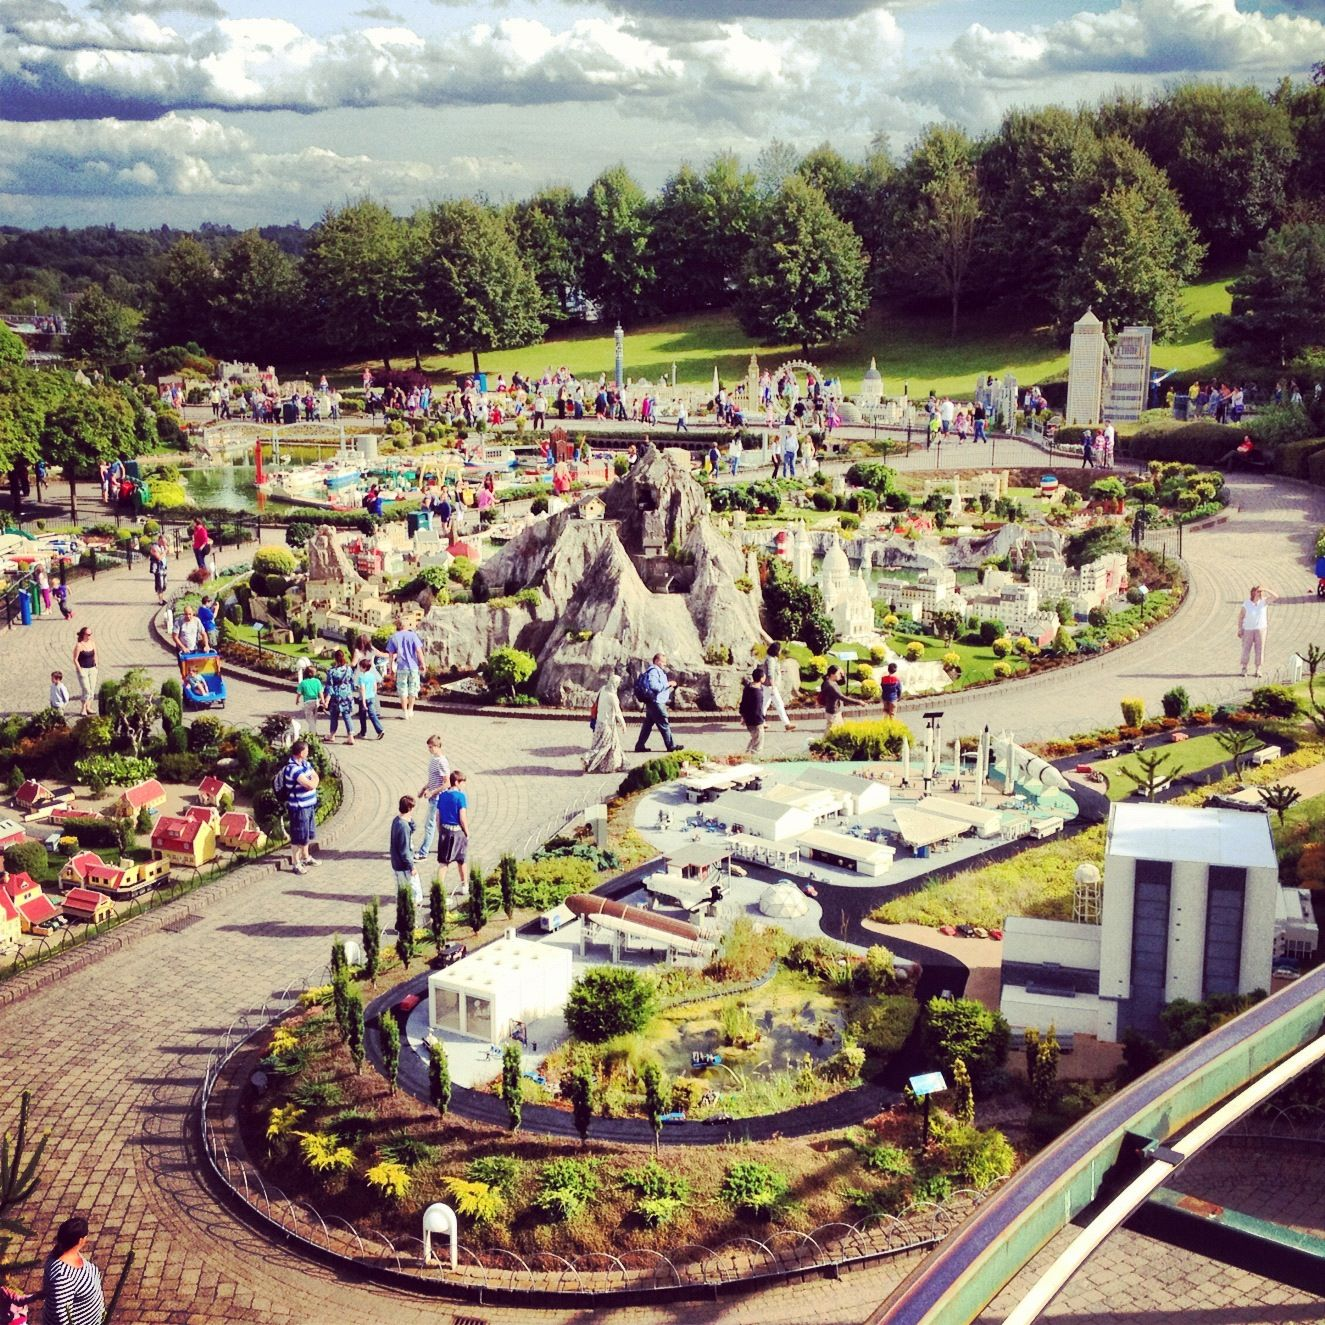 Legoland. Windsor.  Yes, even before we had children, we toured Legoland. It doesn't matter your age, Legoland is a fun place to visit!!